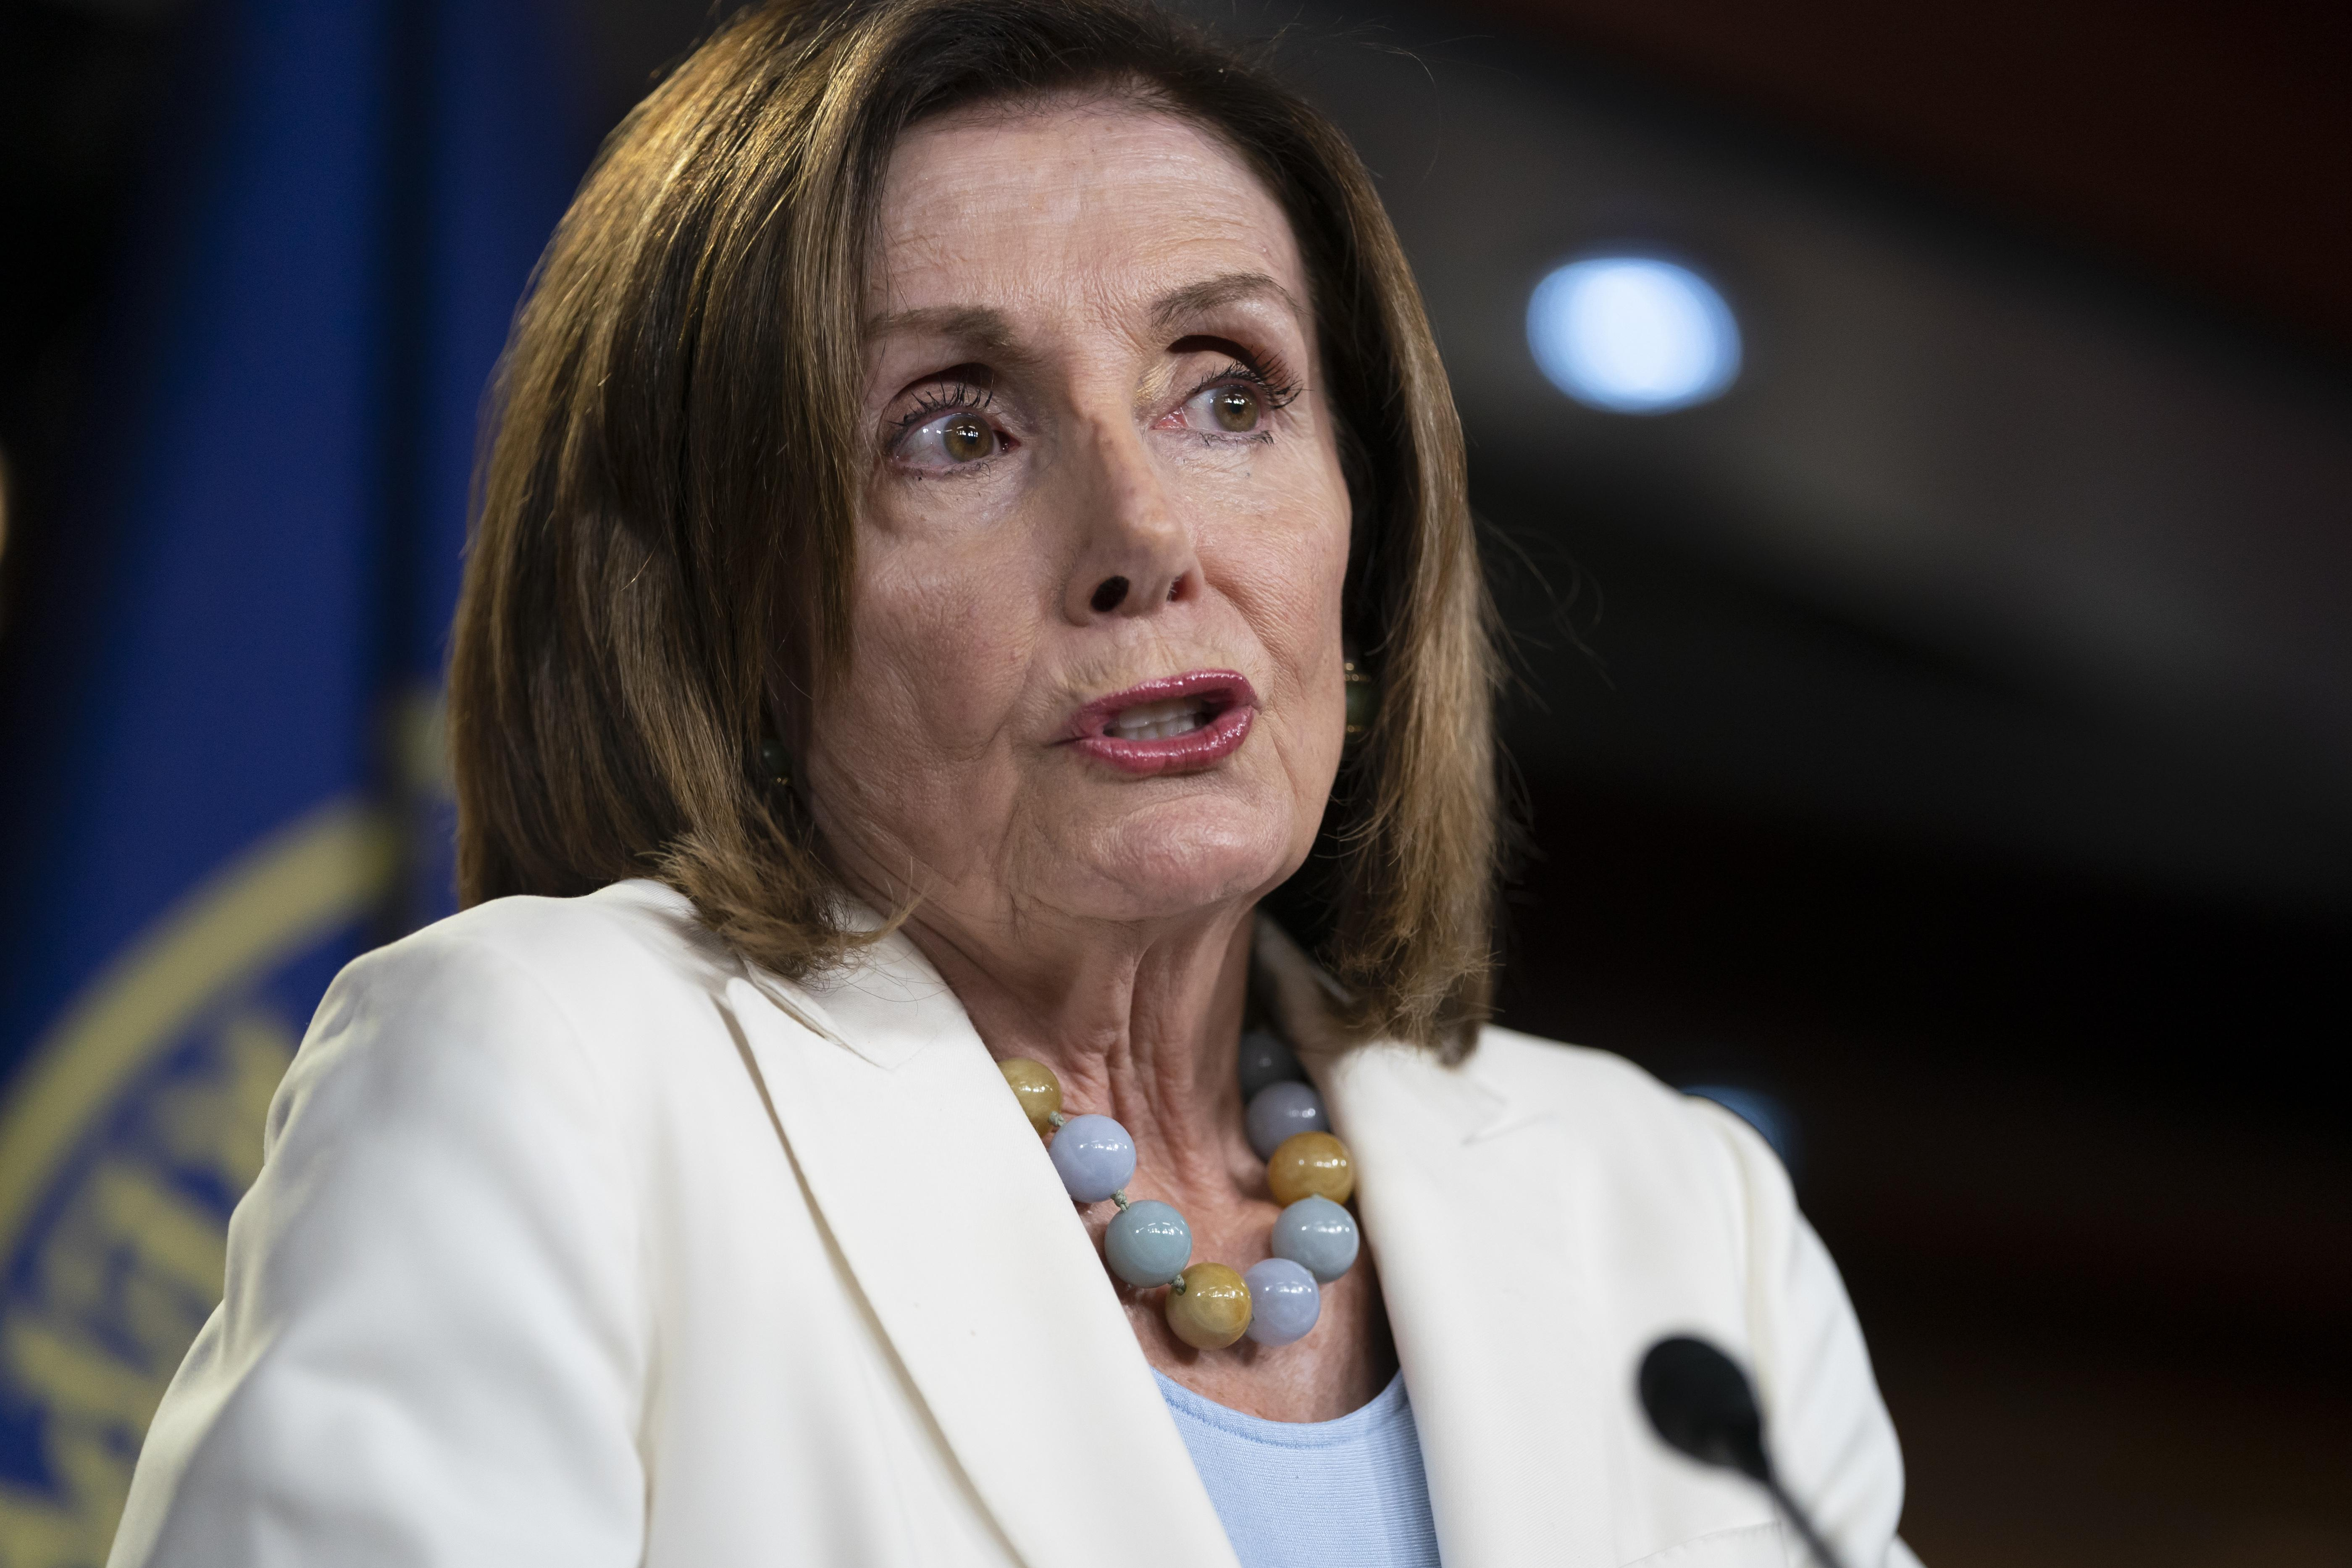 Rep. Doug Collins: Nancy Pelosi should be 'embarrassed' for violating House rules